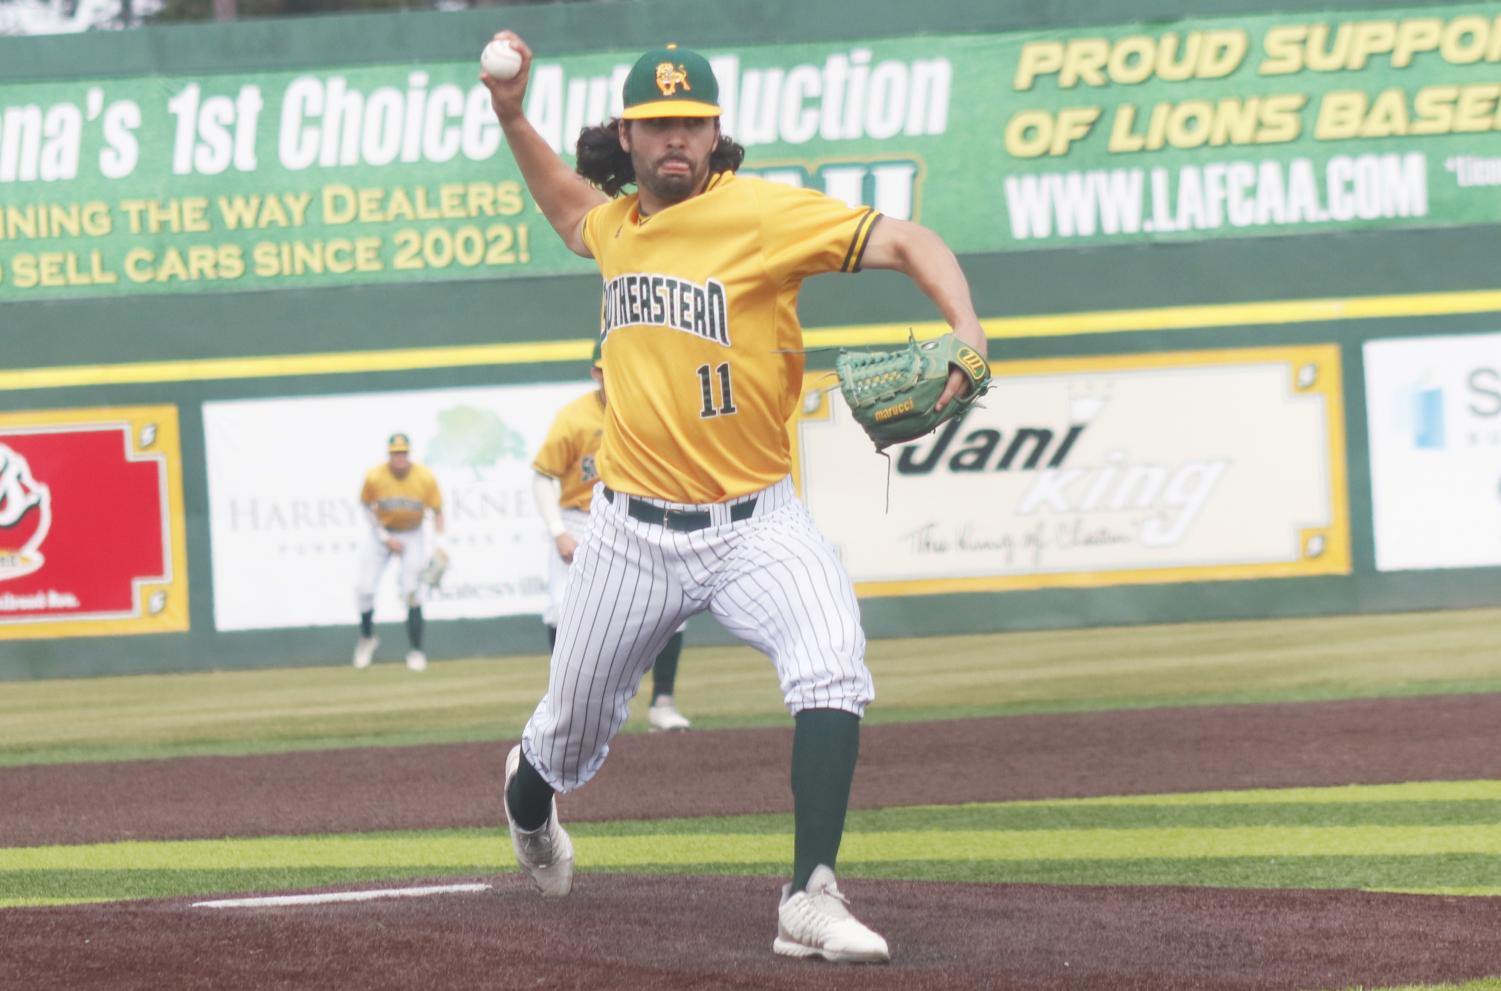 Kade Granier, a redshirt senior pitcher, winds up a pitch. The Lions baseball team secured three wins over the weekend against the Abilene Christian University Wildcats, extending the win streak to five games.